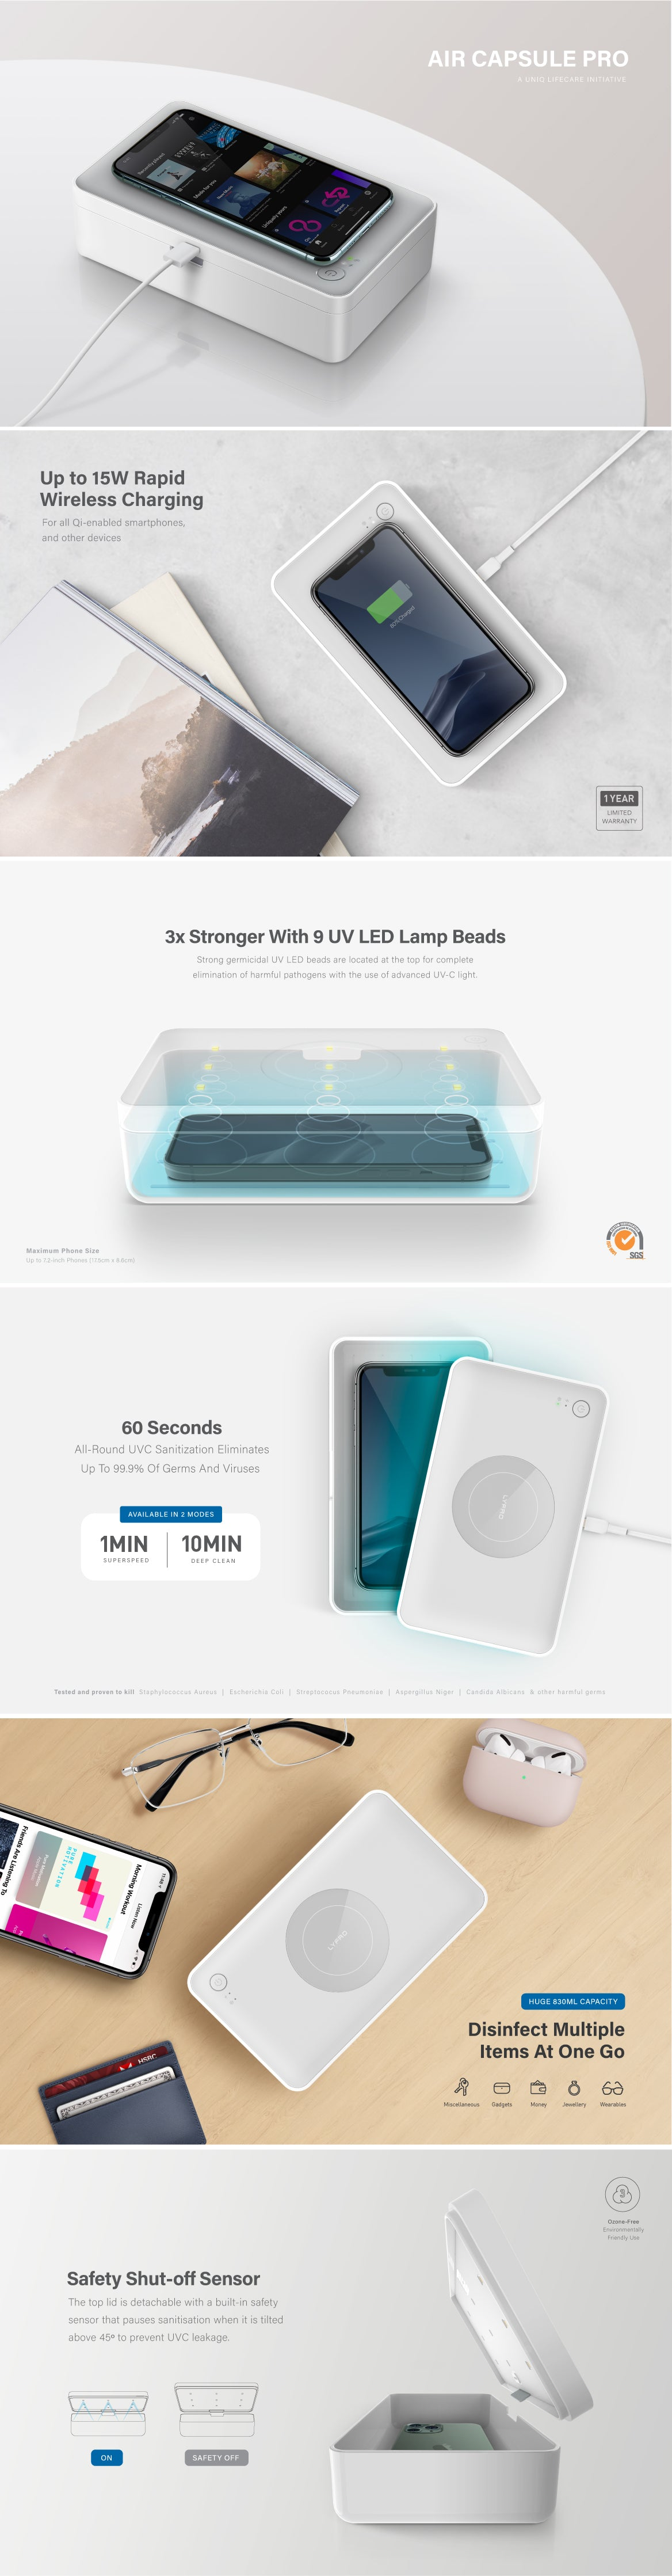 UNIQ LYFRO Air Capsule Pro UV Sanitizer Disinfection Box with 15W Fast Wireless Charging To Disinfect Multiple Everyday Items